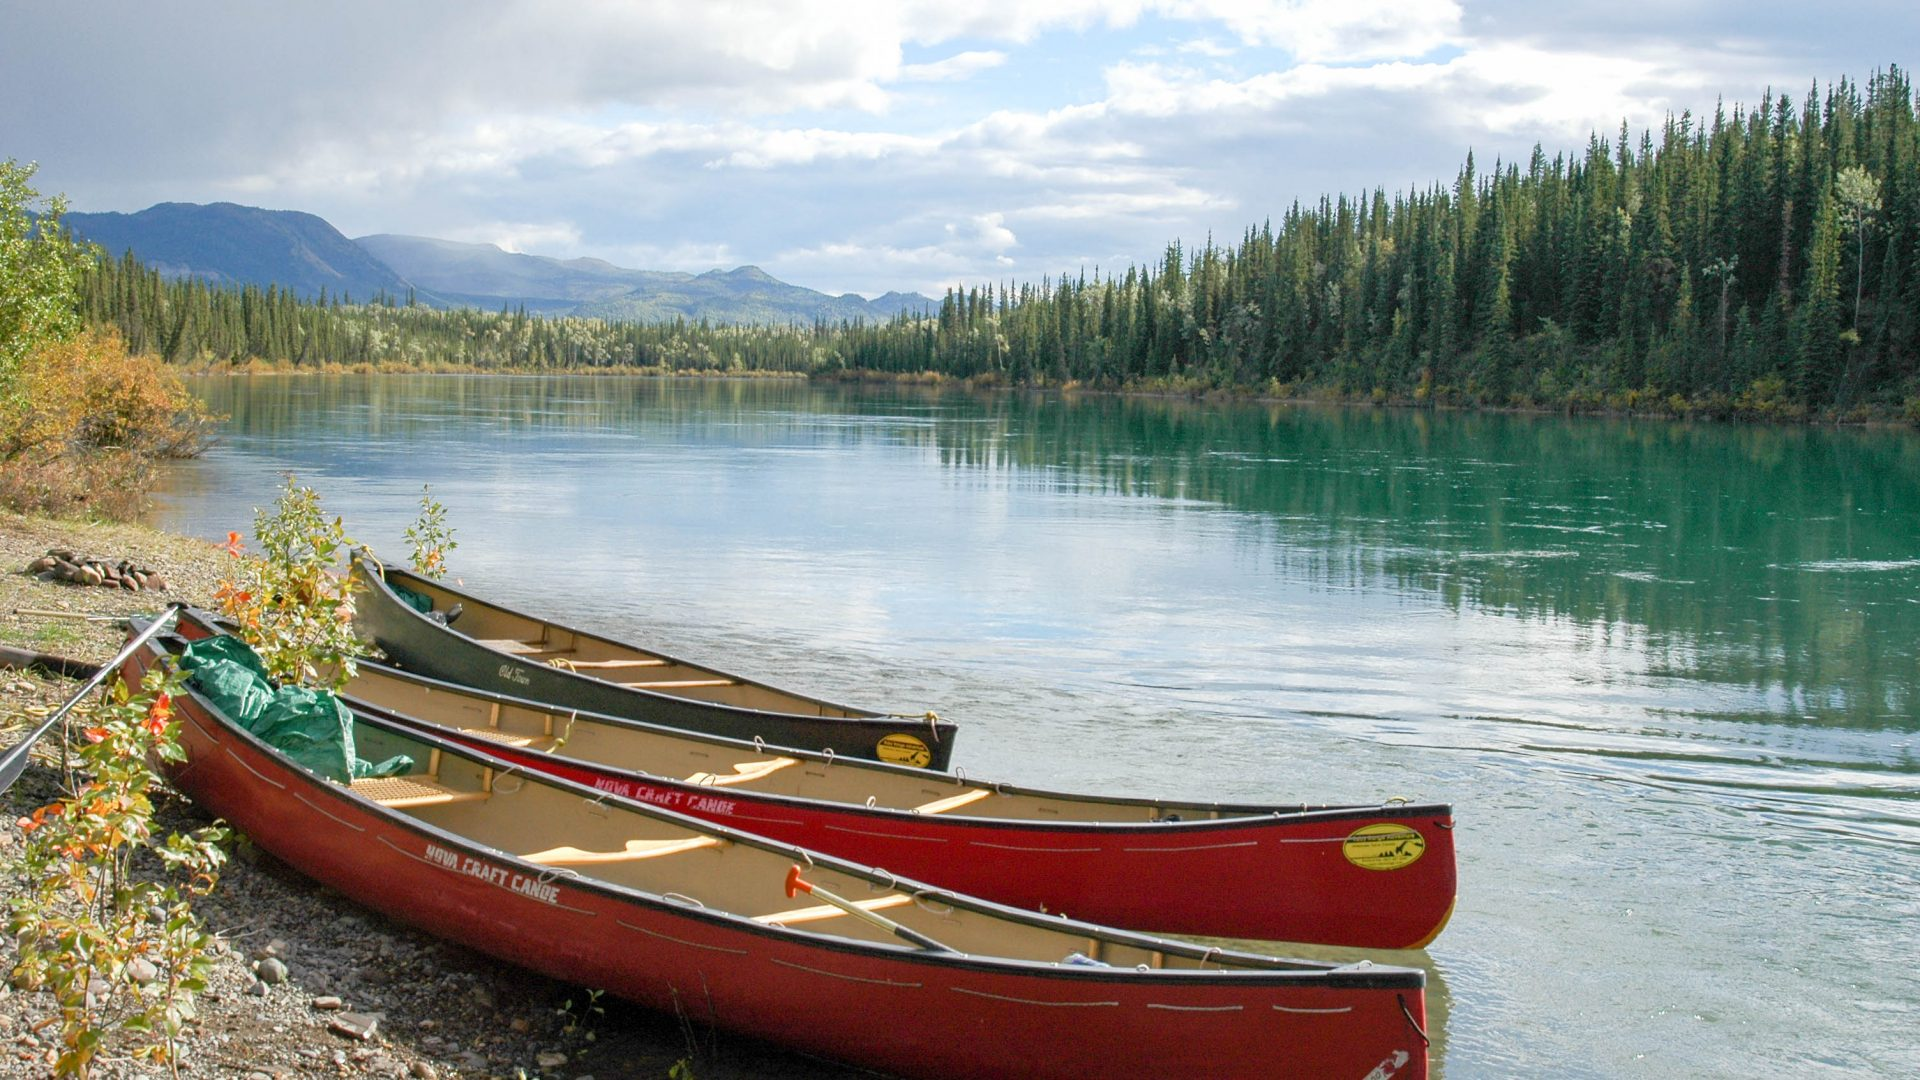 Yukon River Tour - Lake Laberge to Carmacks - Canoe next to the Yukon River